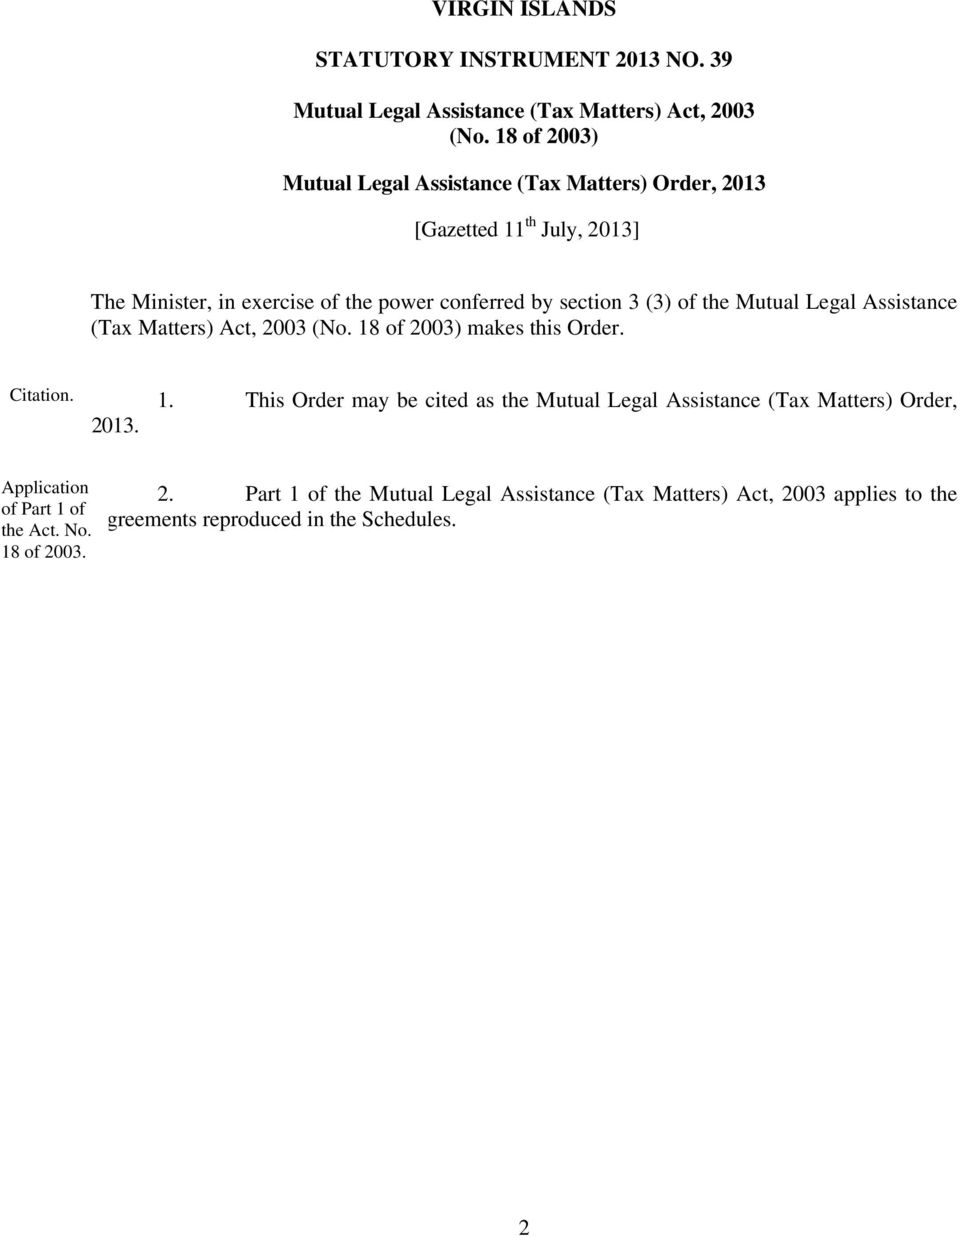 (3) of the Mutual Legal Assistance (Tax Matters) Act, 2003 (No. 18